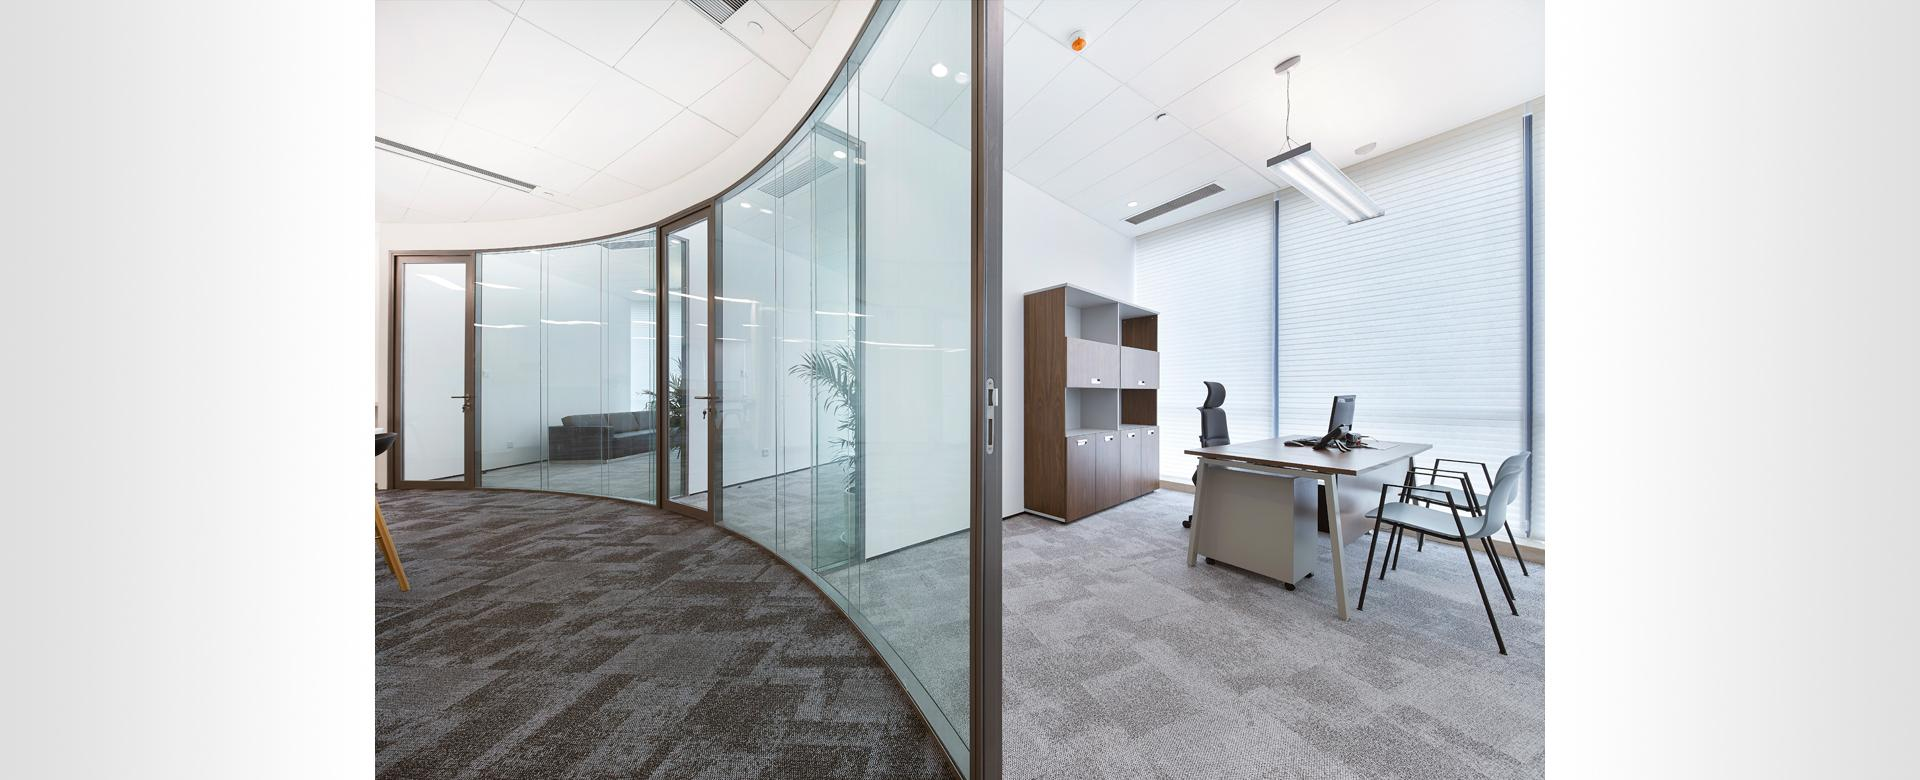 Mplus Curved partitions